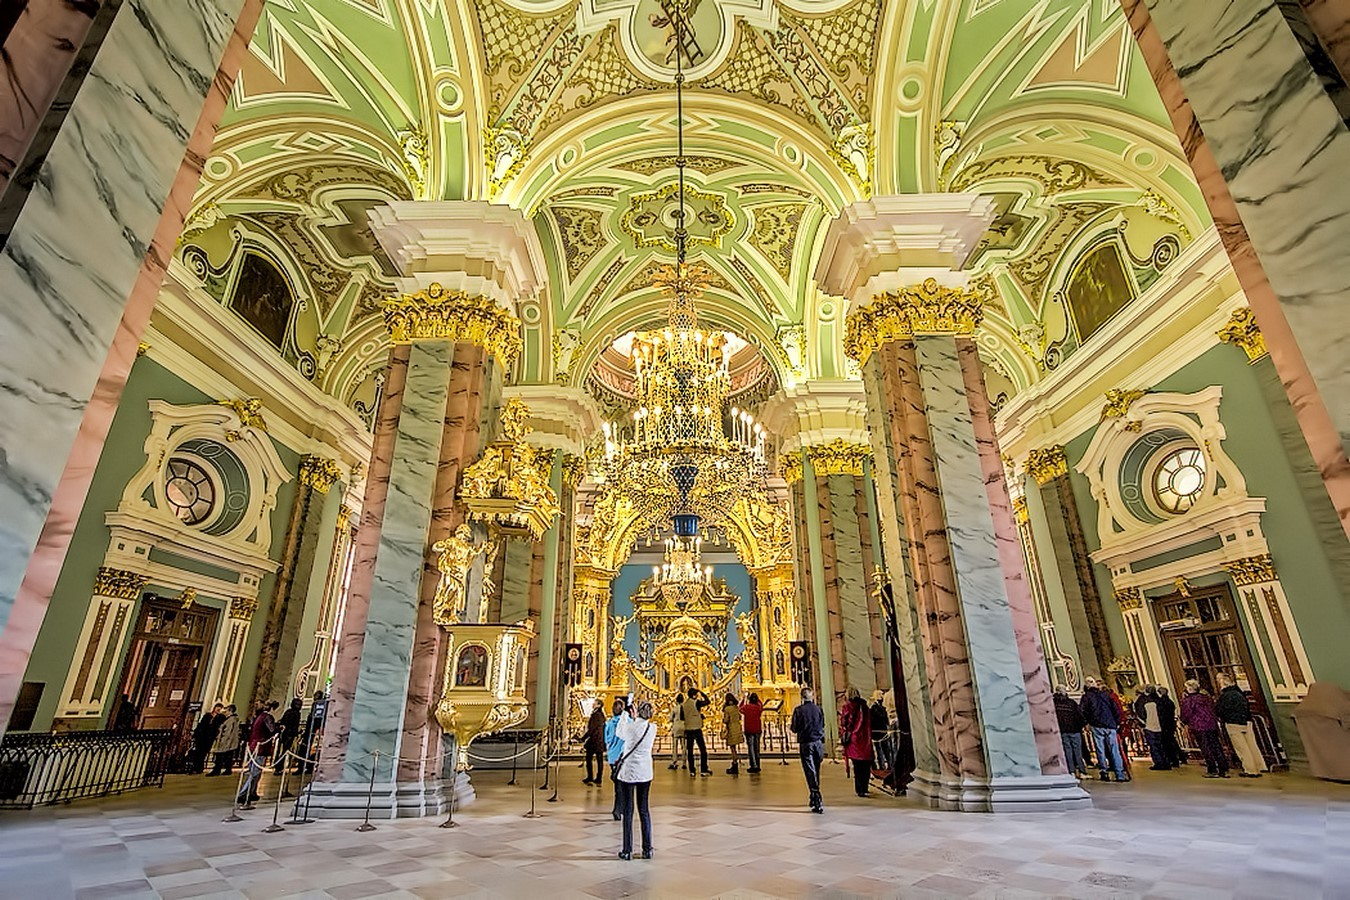 10 Reasons why Architects should visit Russia - Sheet37